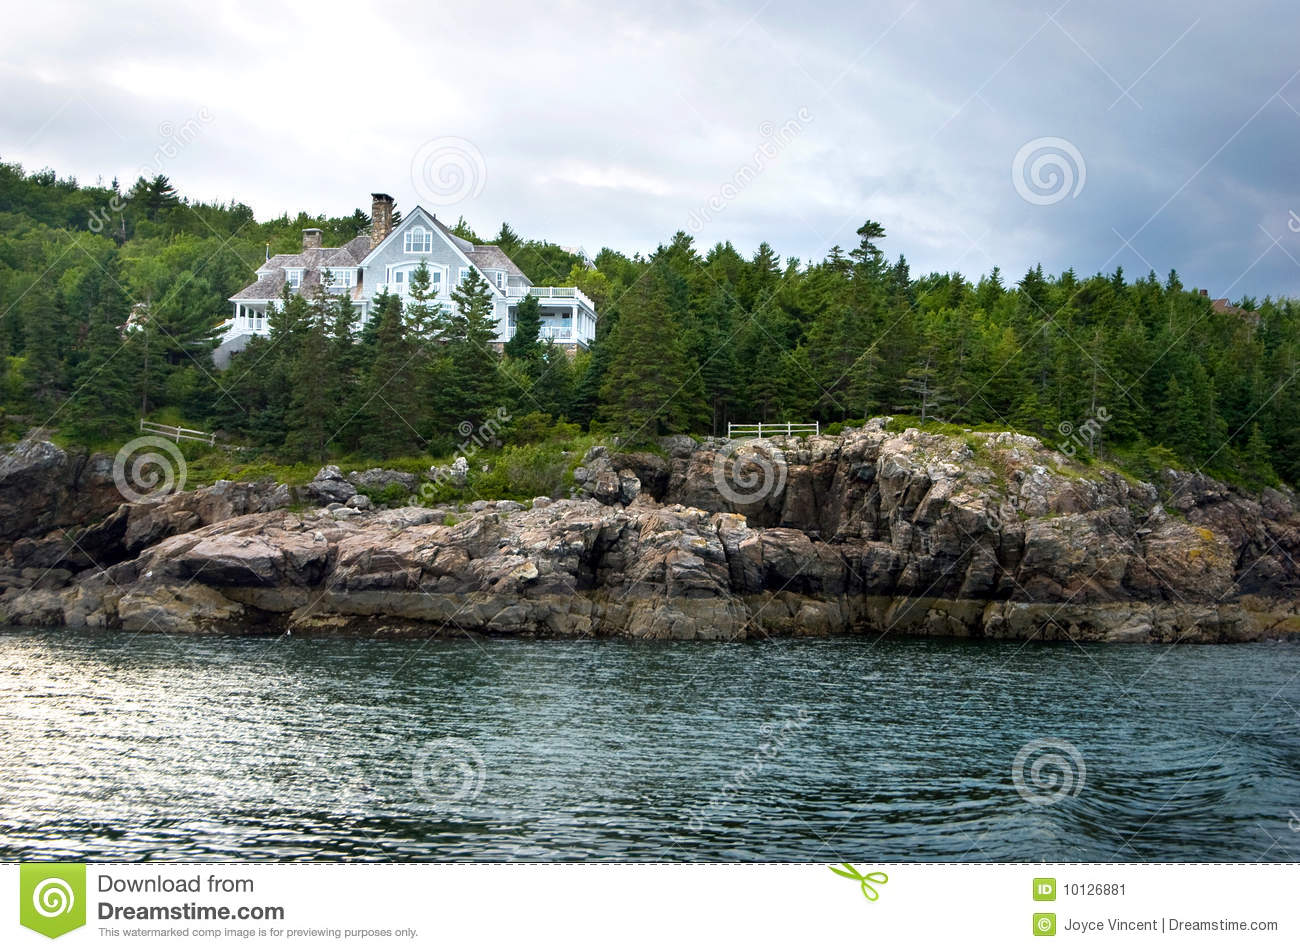 Saving Belizes Mangrove Forests likewise Portland together with Bike Pedestrian Routes Being Marked Through Augusta And Hallowell further Stock Image Mansion Coast Maine Image10126881 besides Maine. on 2